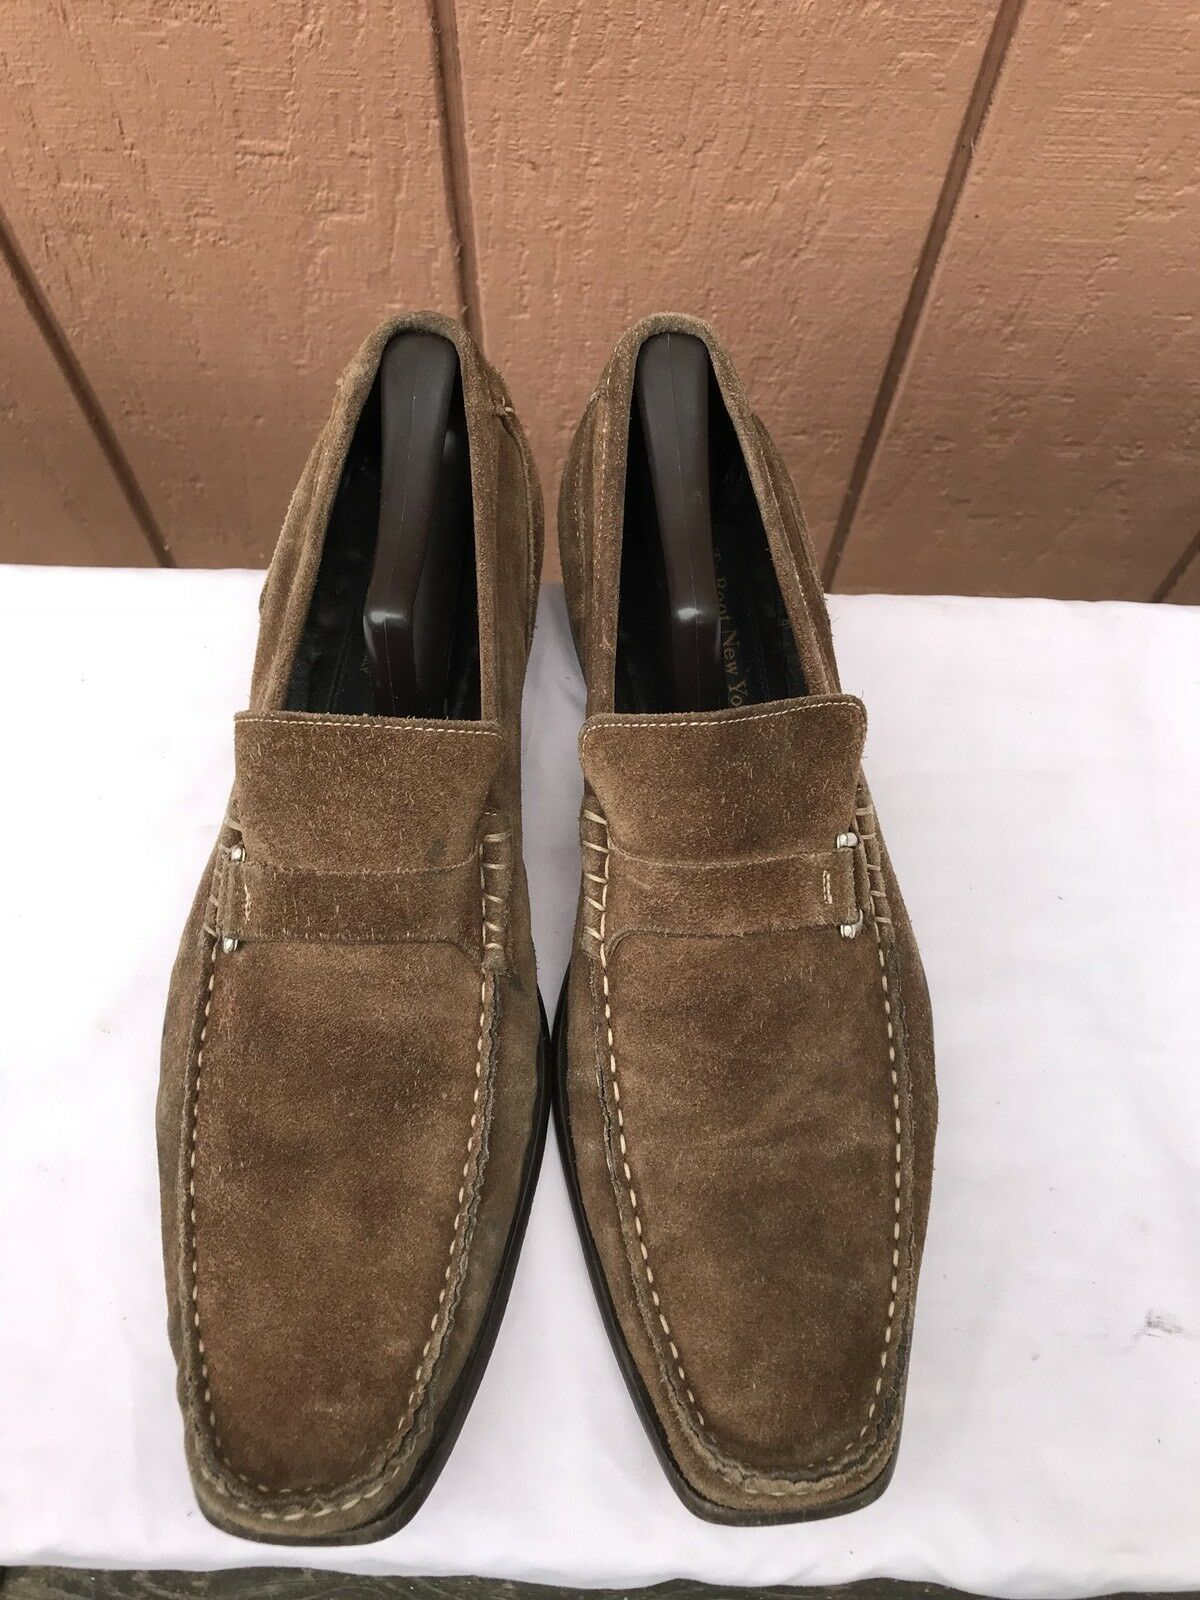 To On Boot New York Slip On To Suede Penny Loafers Brown Uomo Sz US 9 7e5b1f